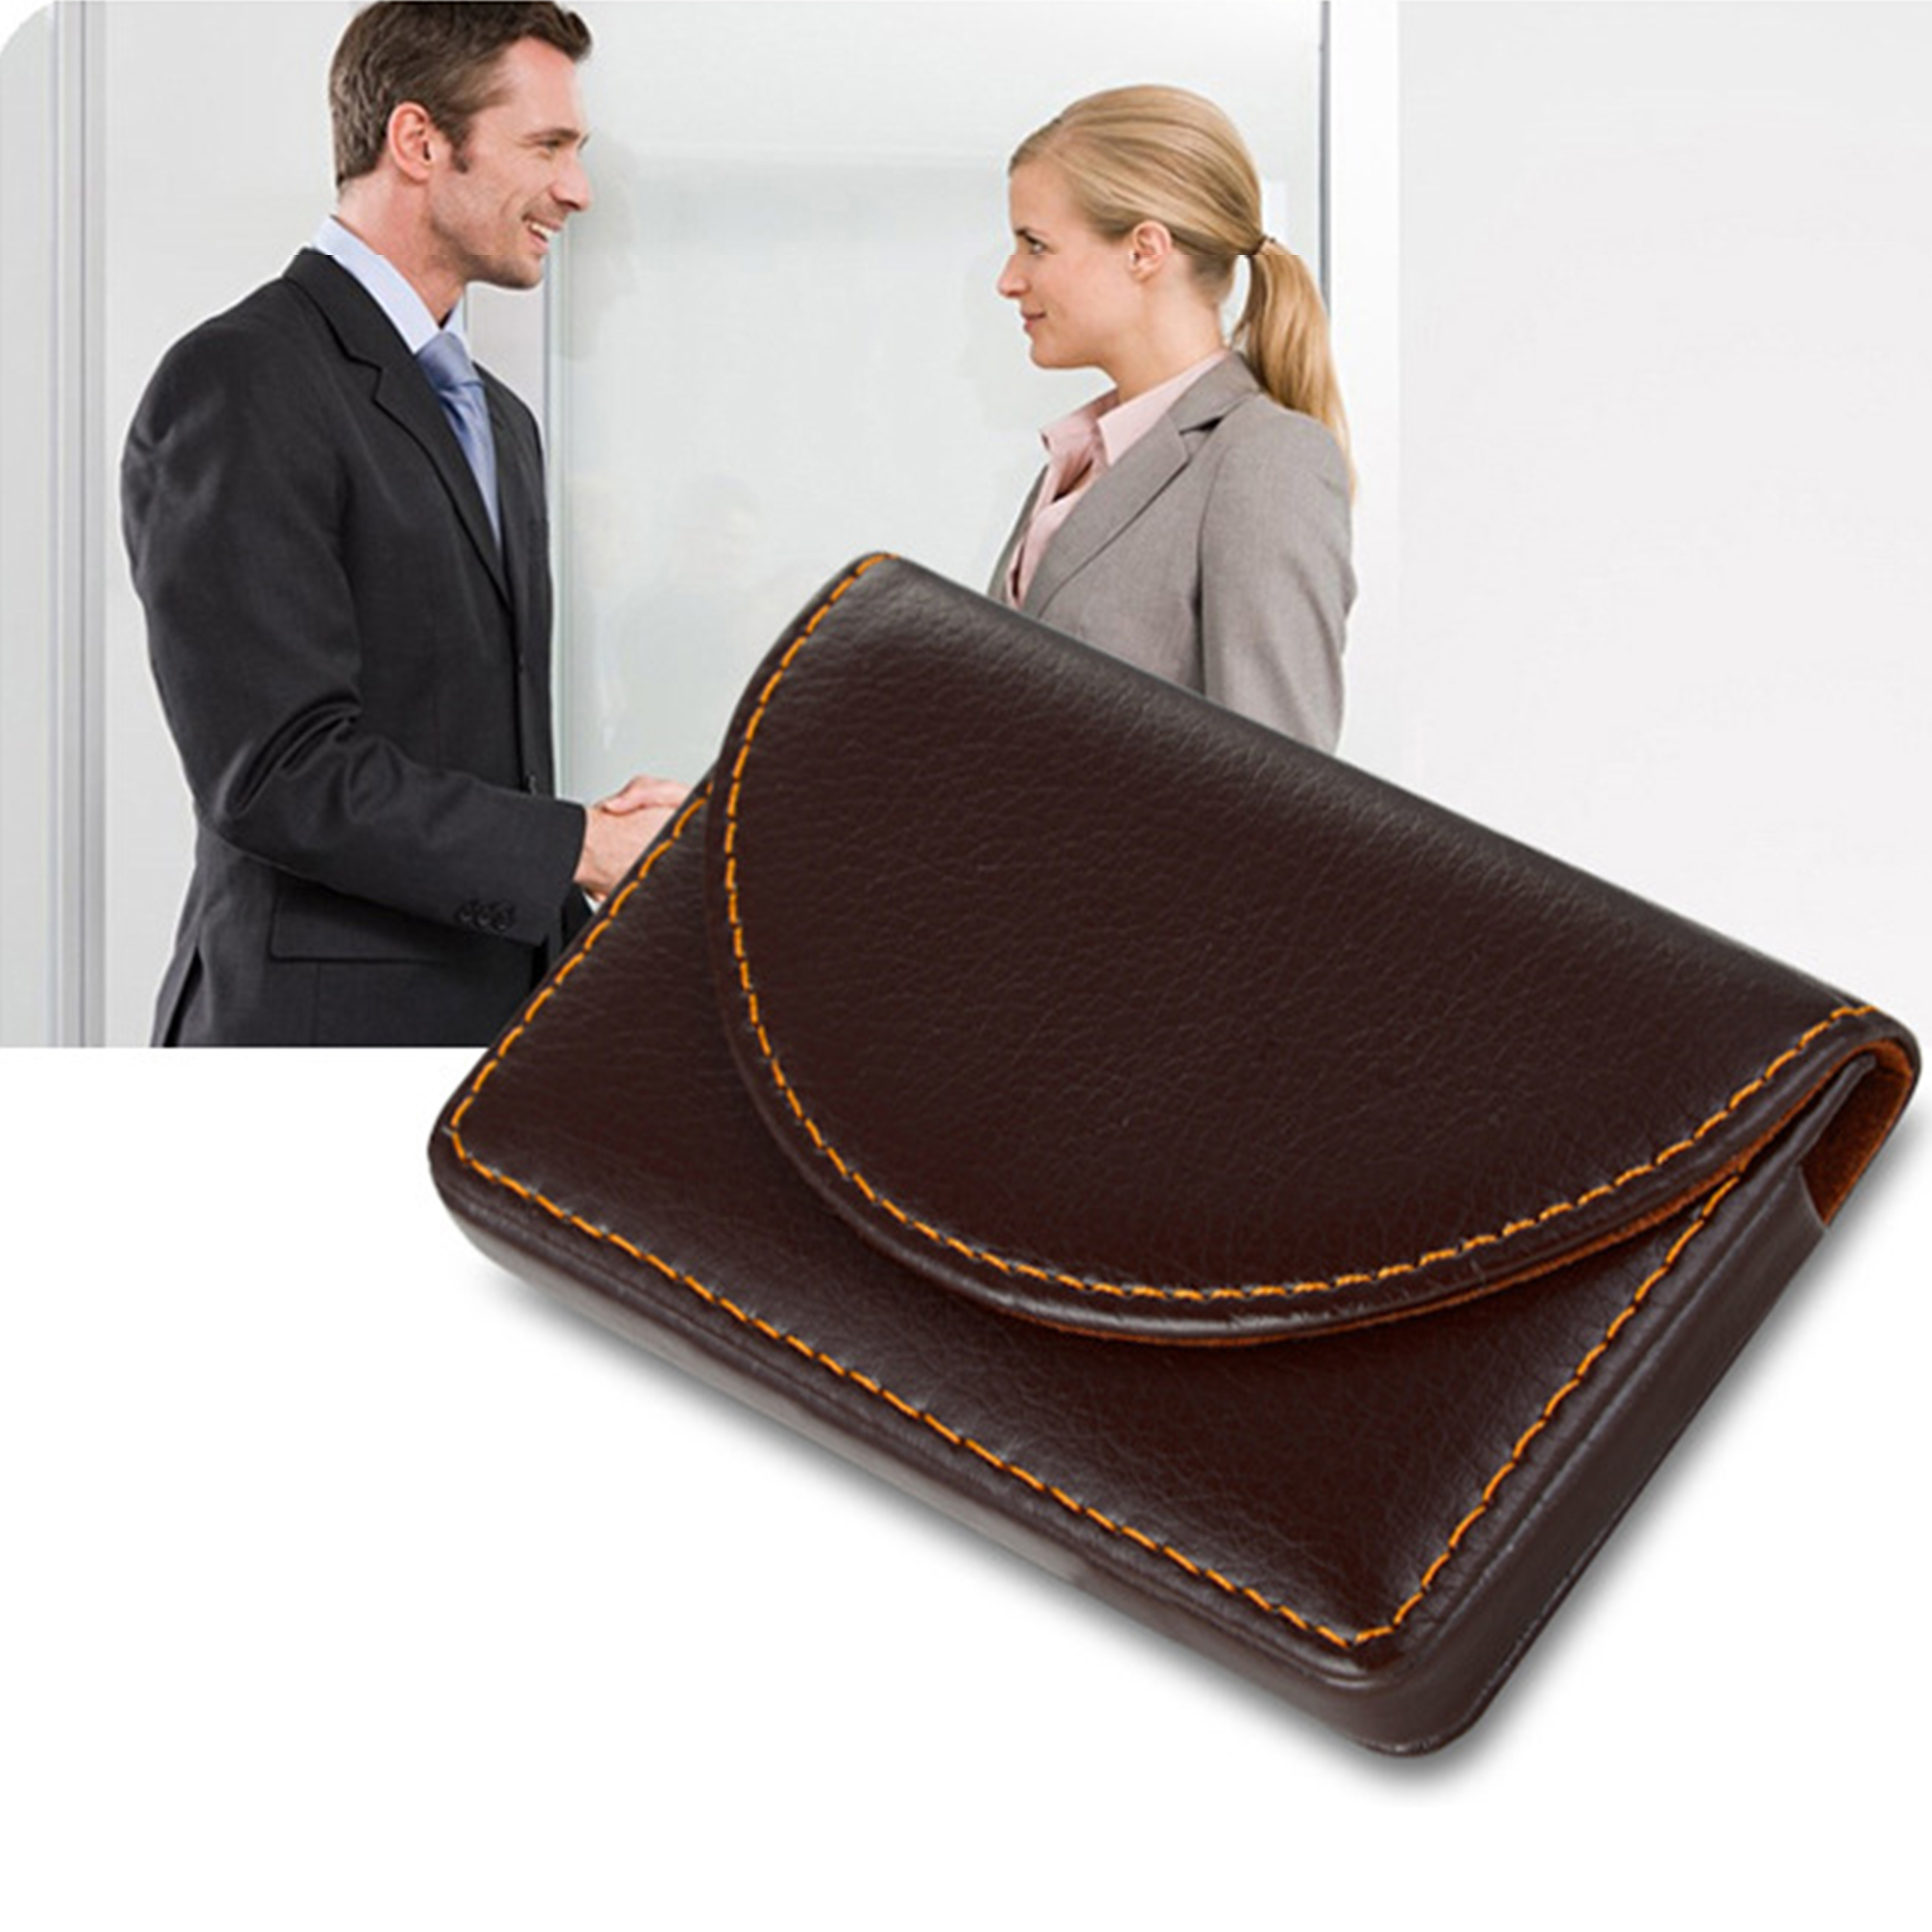 professional leather 20 business name card holder credit